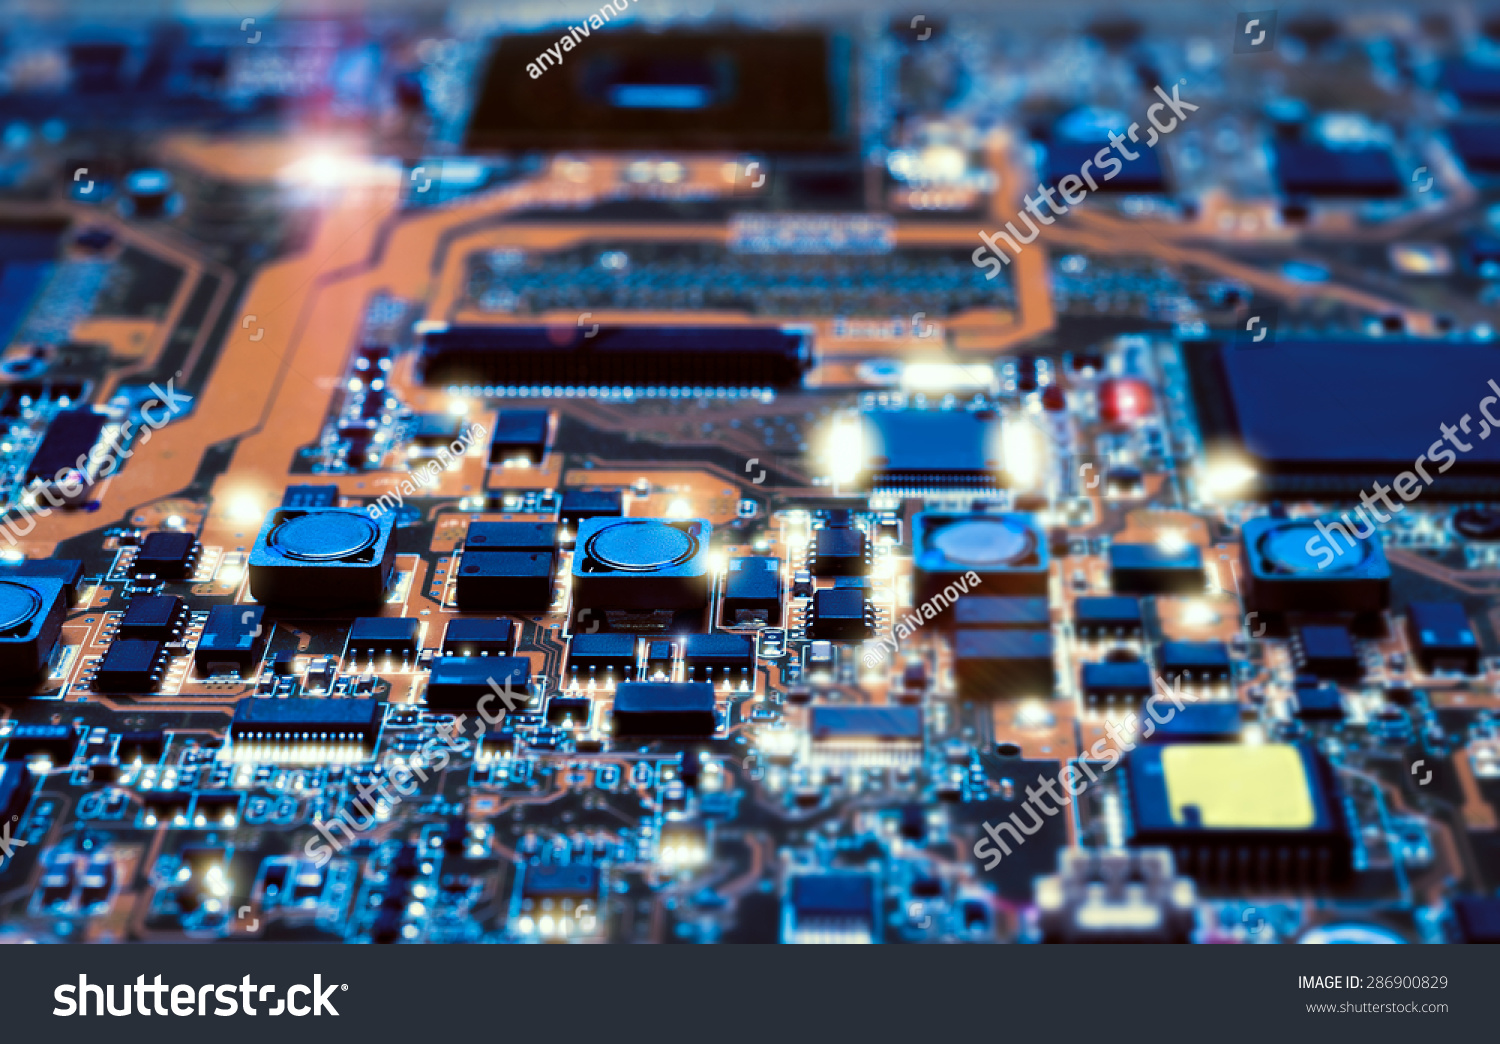 Closeup On Electronic Board Hardware Repair Stock Photo Edit Now Maintenance Tools Fixture Circuit In Shop Blurred And Toned Image Shallow Dof